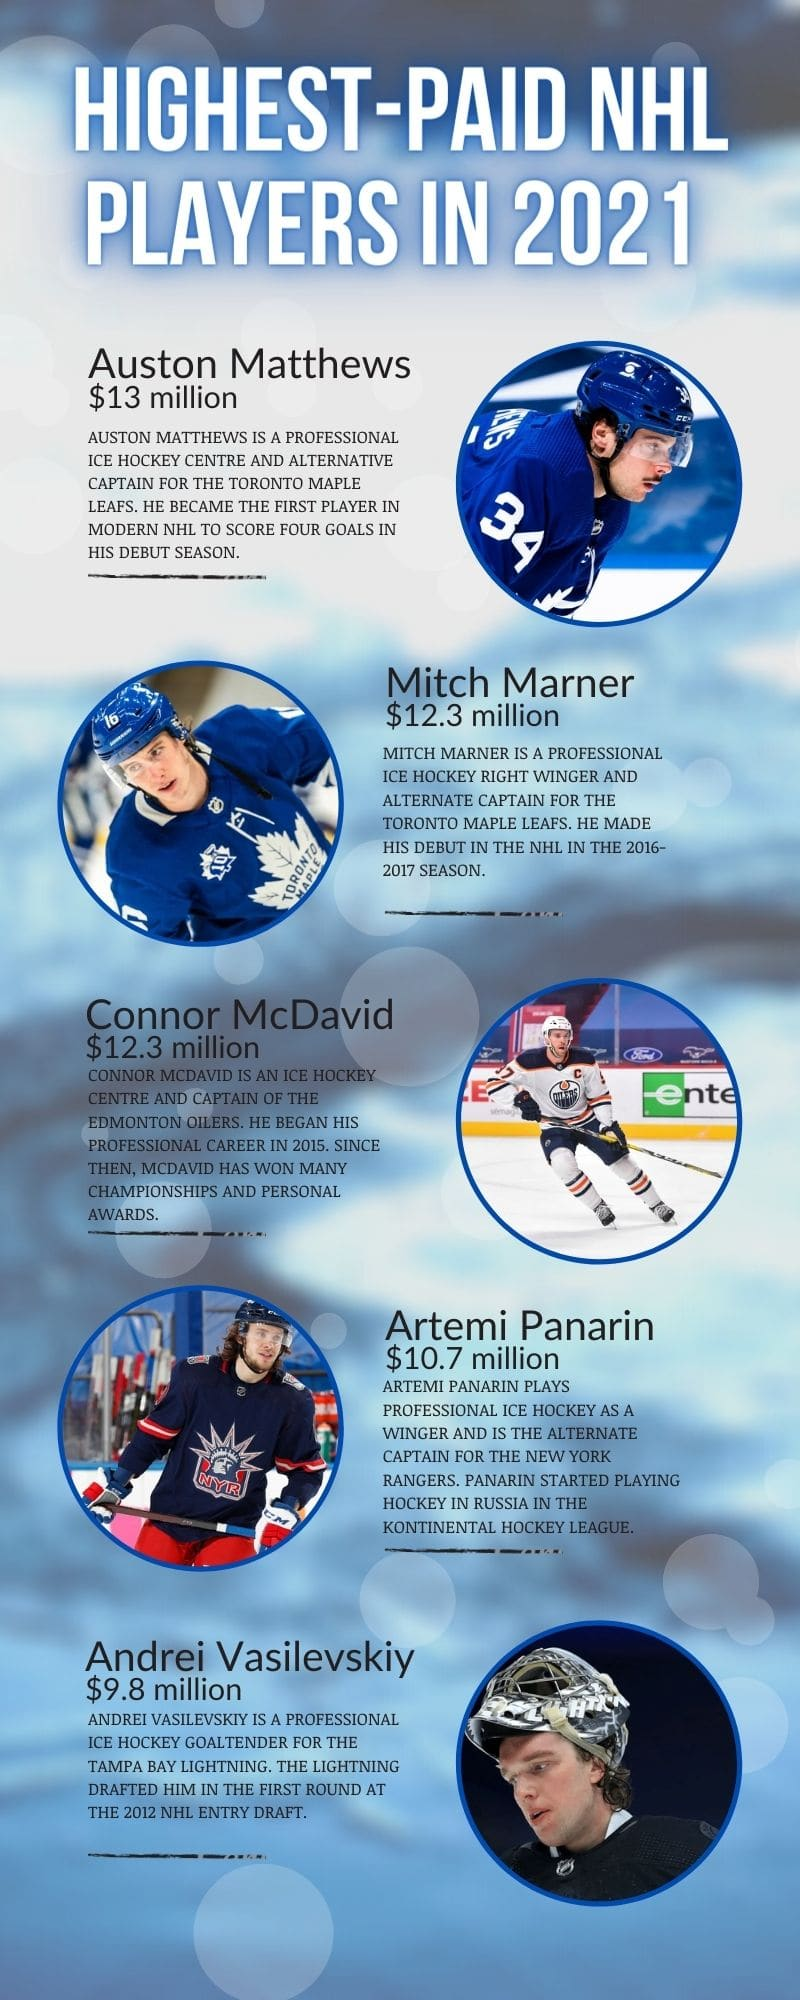 highest-paid NHL players